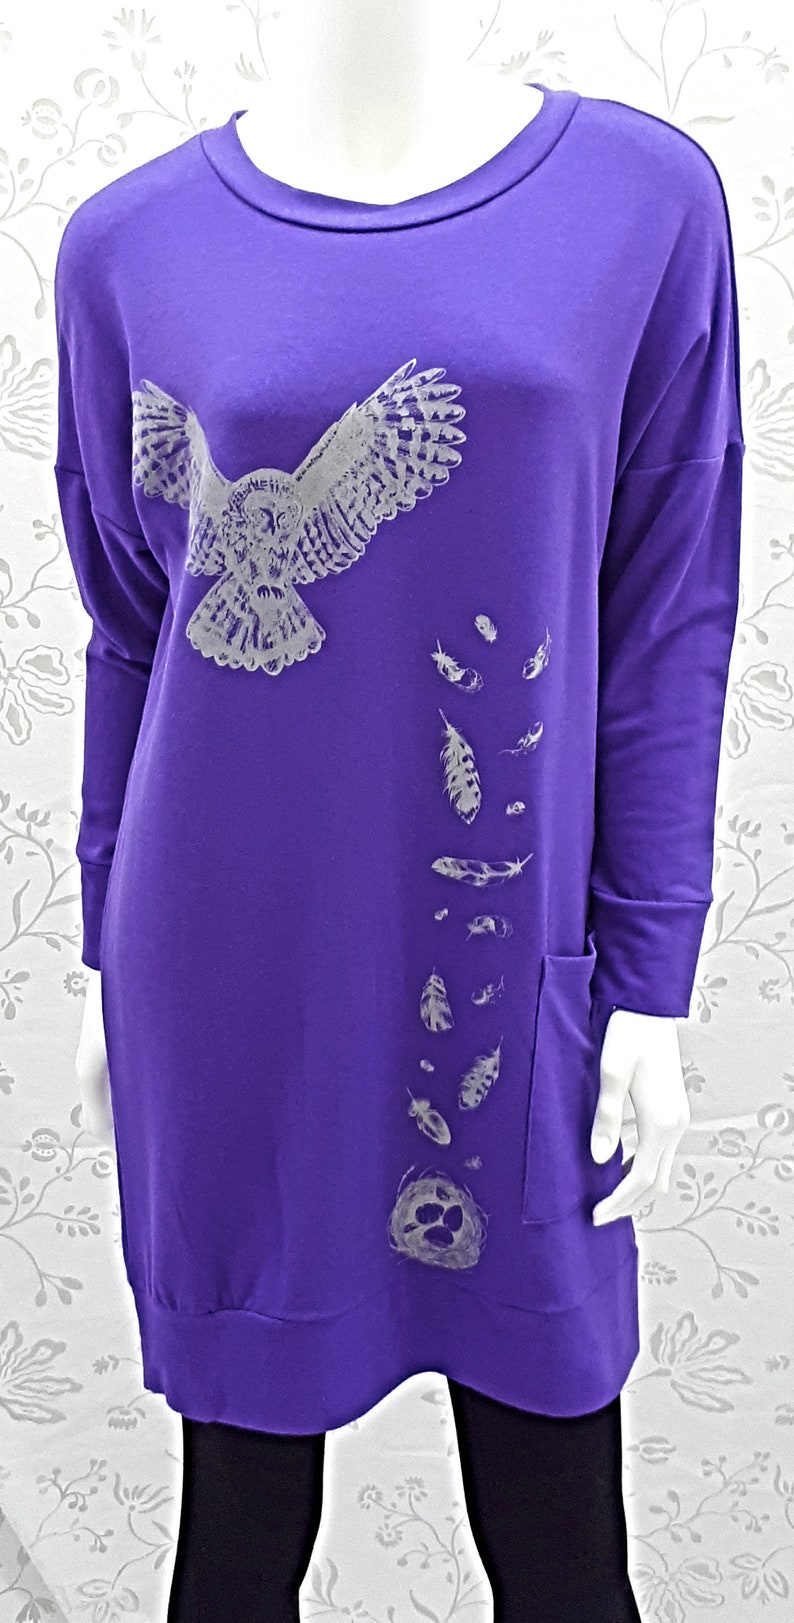 Bamboo Violet Clothing Made in Canada Design Longline Pachena Sweatshirt Fashion featuring OWL SPIRIT by PachenaClothing